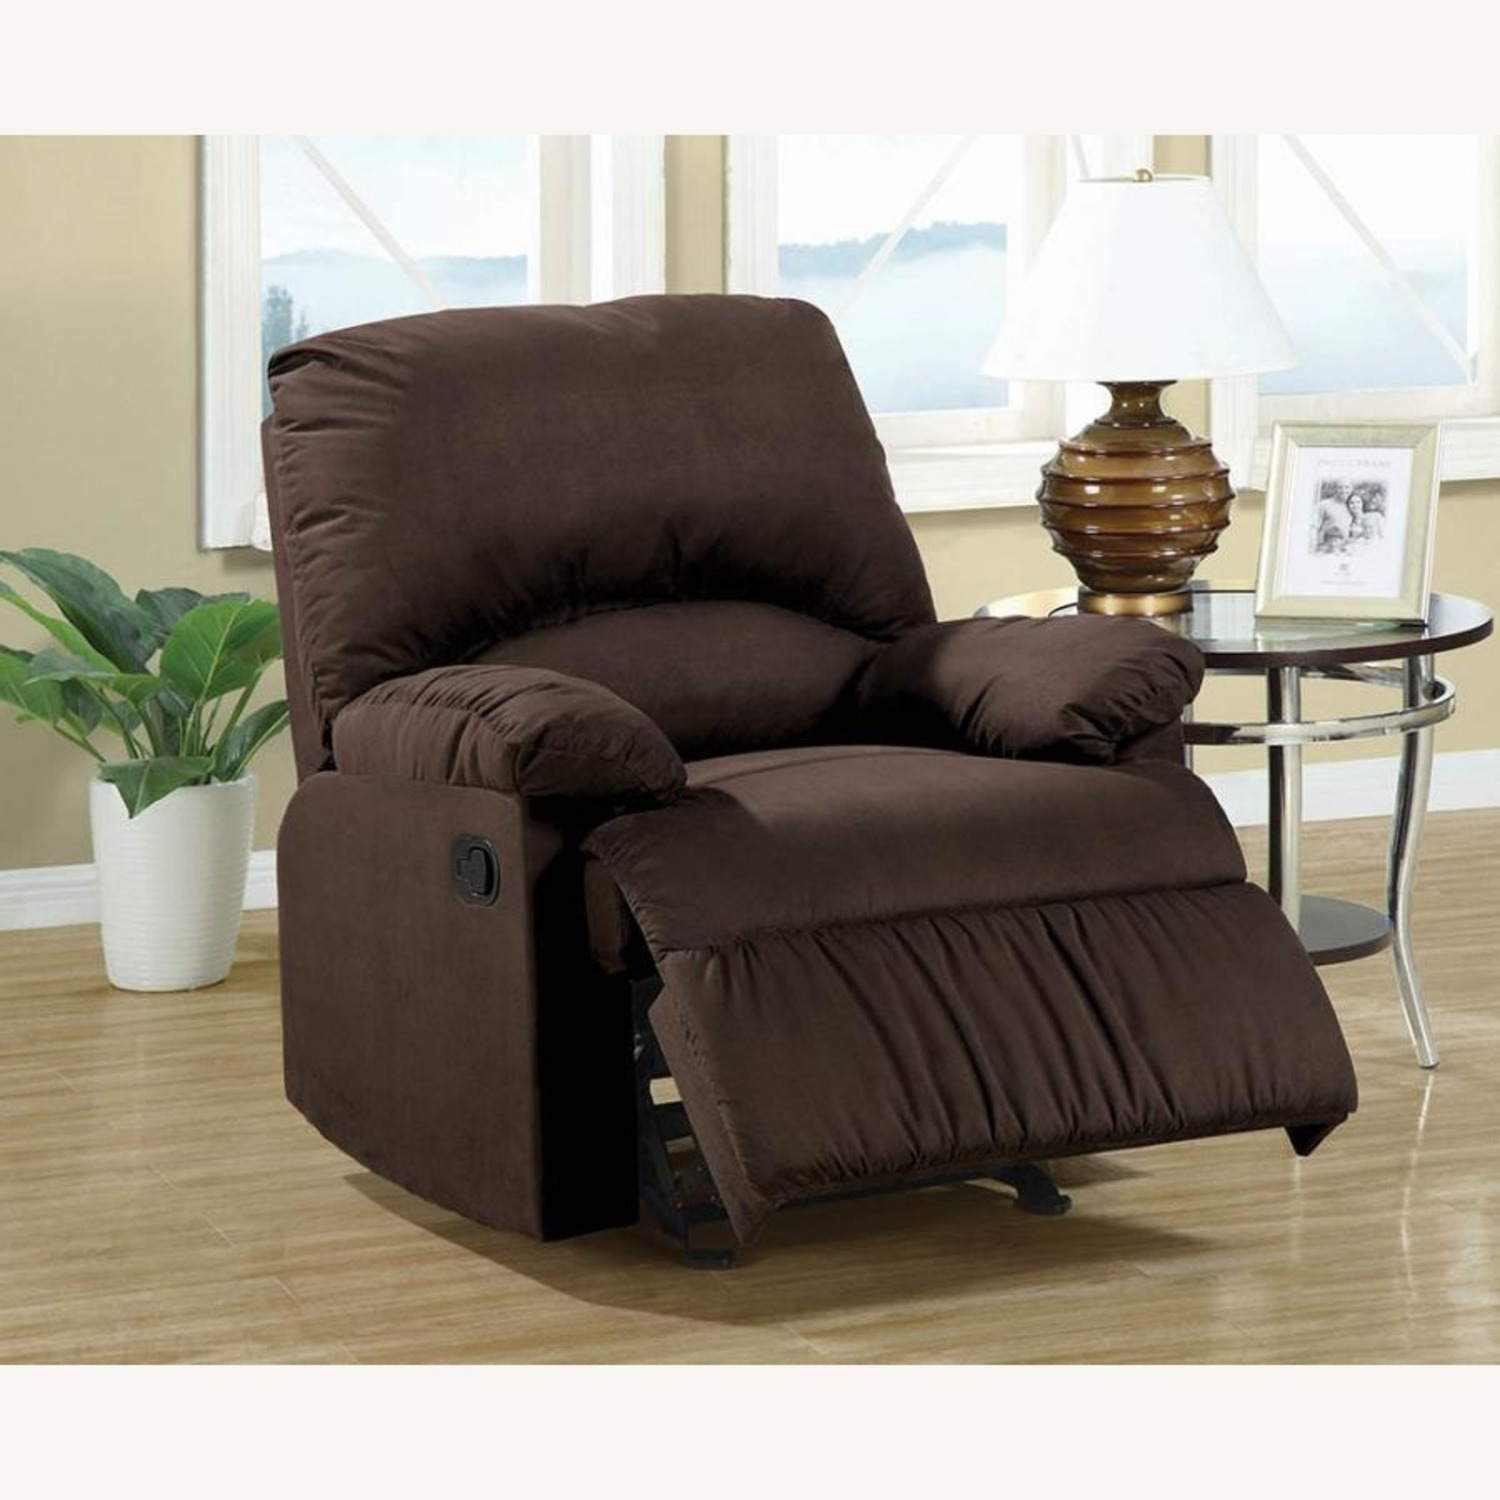 Glider Recliner In Chocolate Microfiber Upholstery - image-2